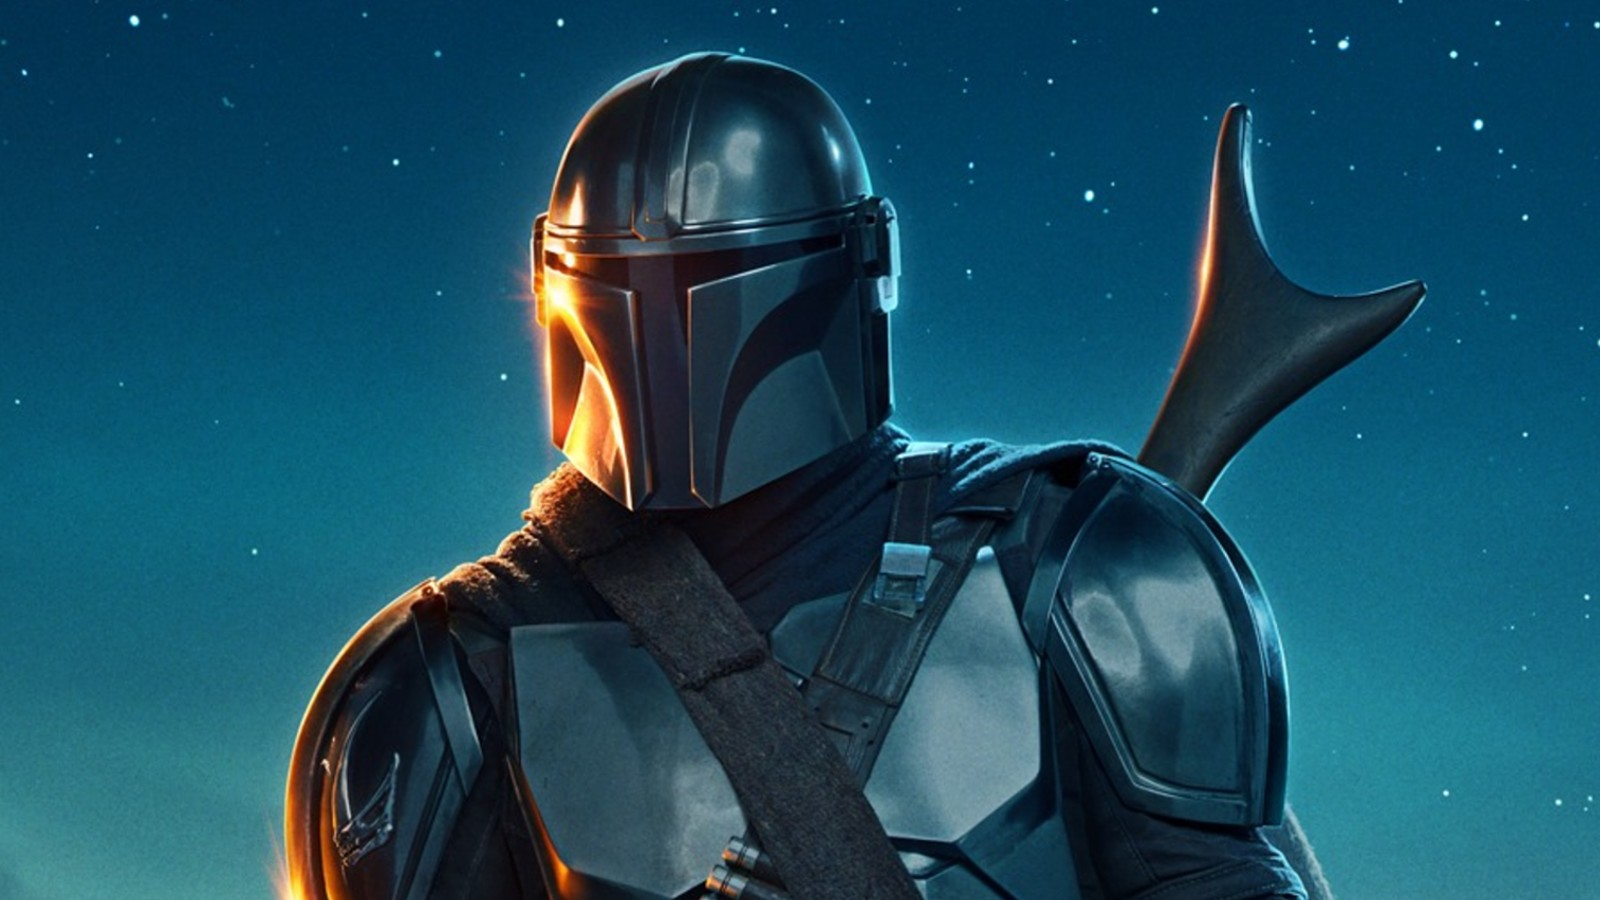 the mandalorian season 2 poster